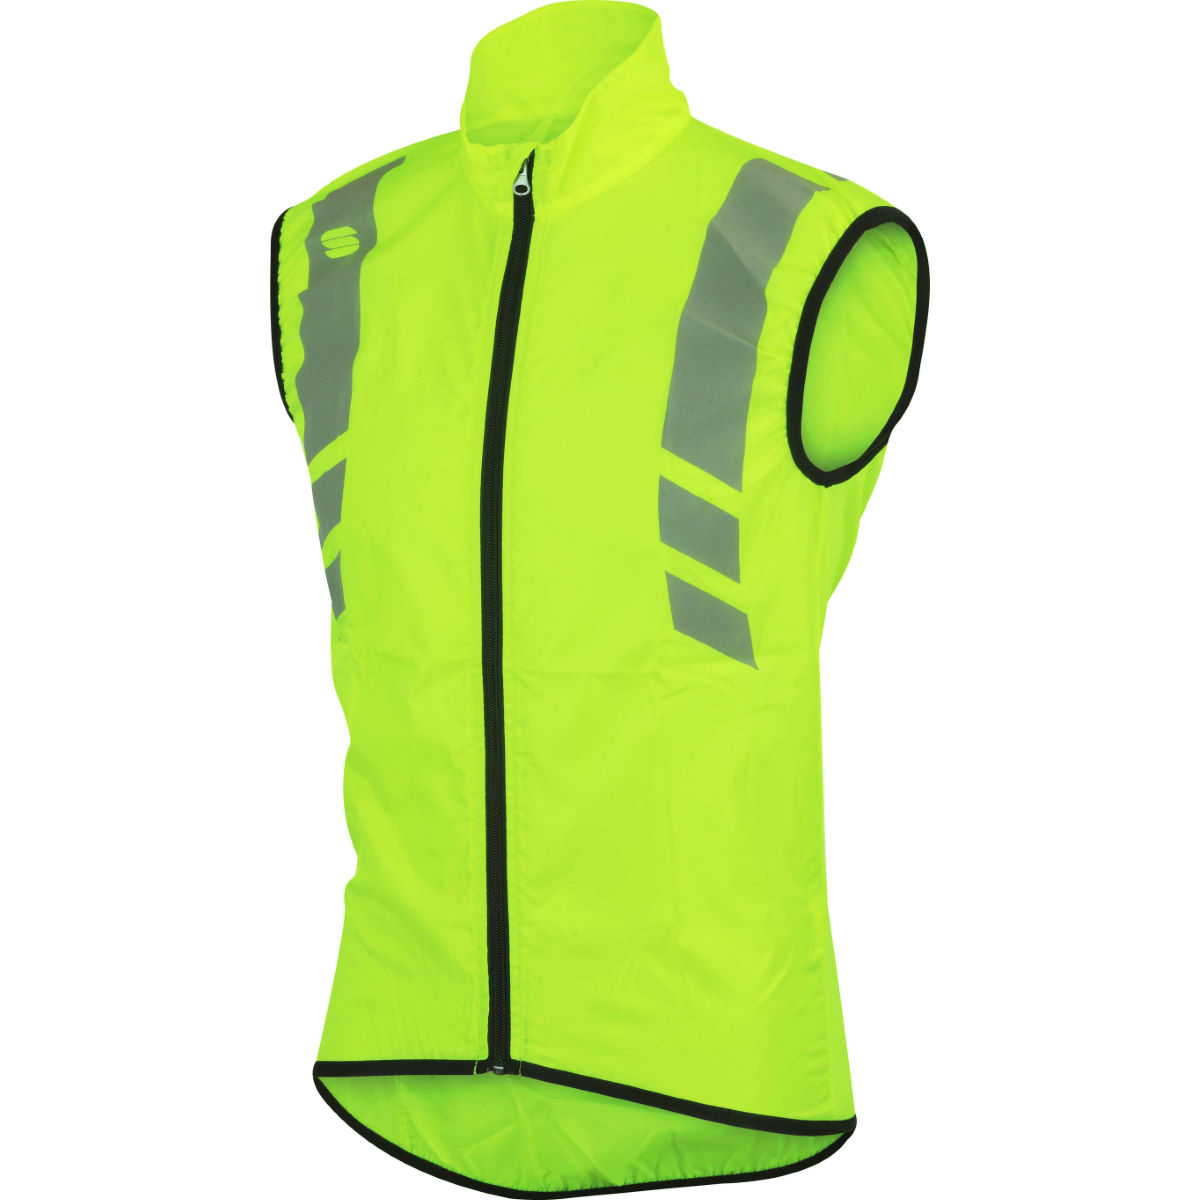 Sportful Reflex 2 Windproof Cycling Gilet